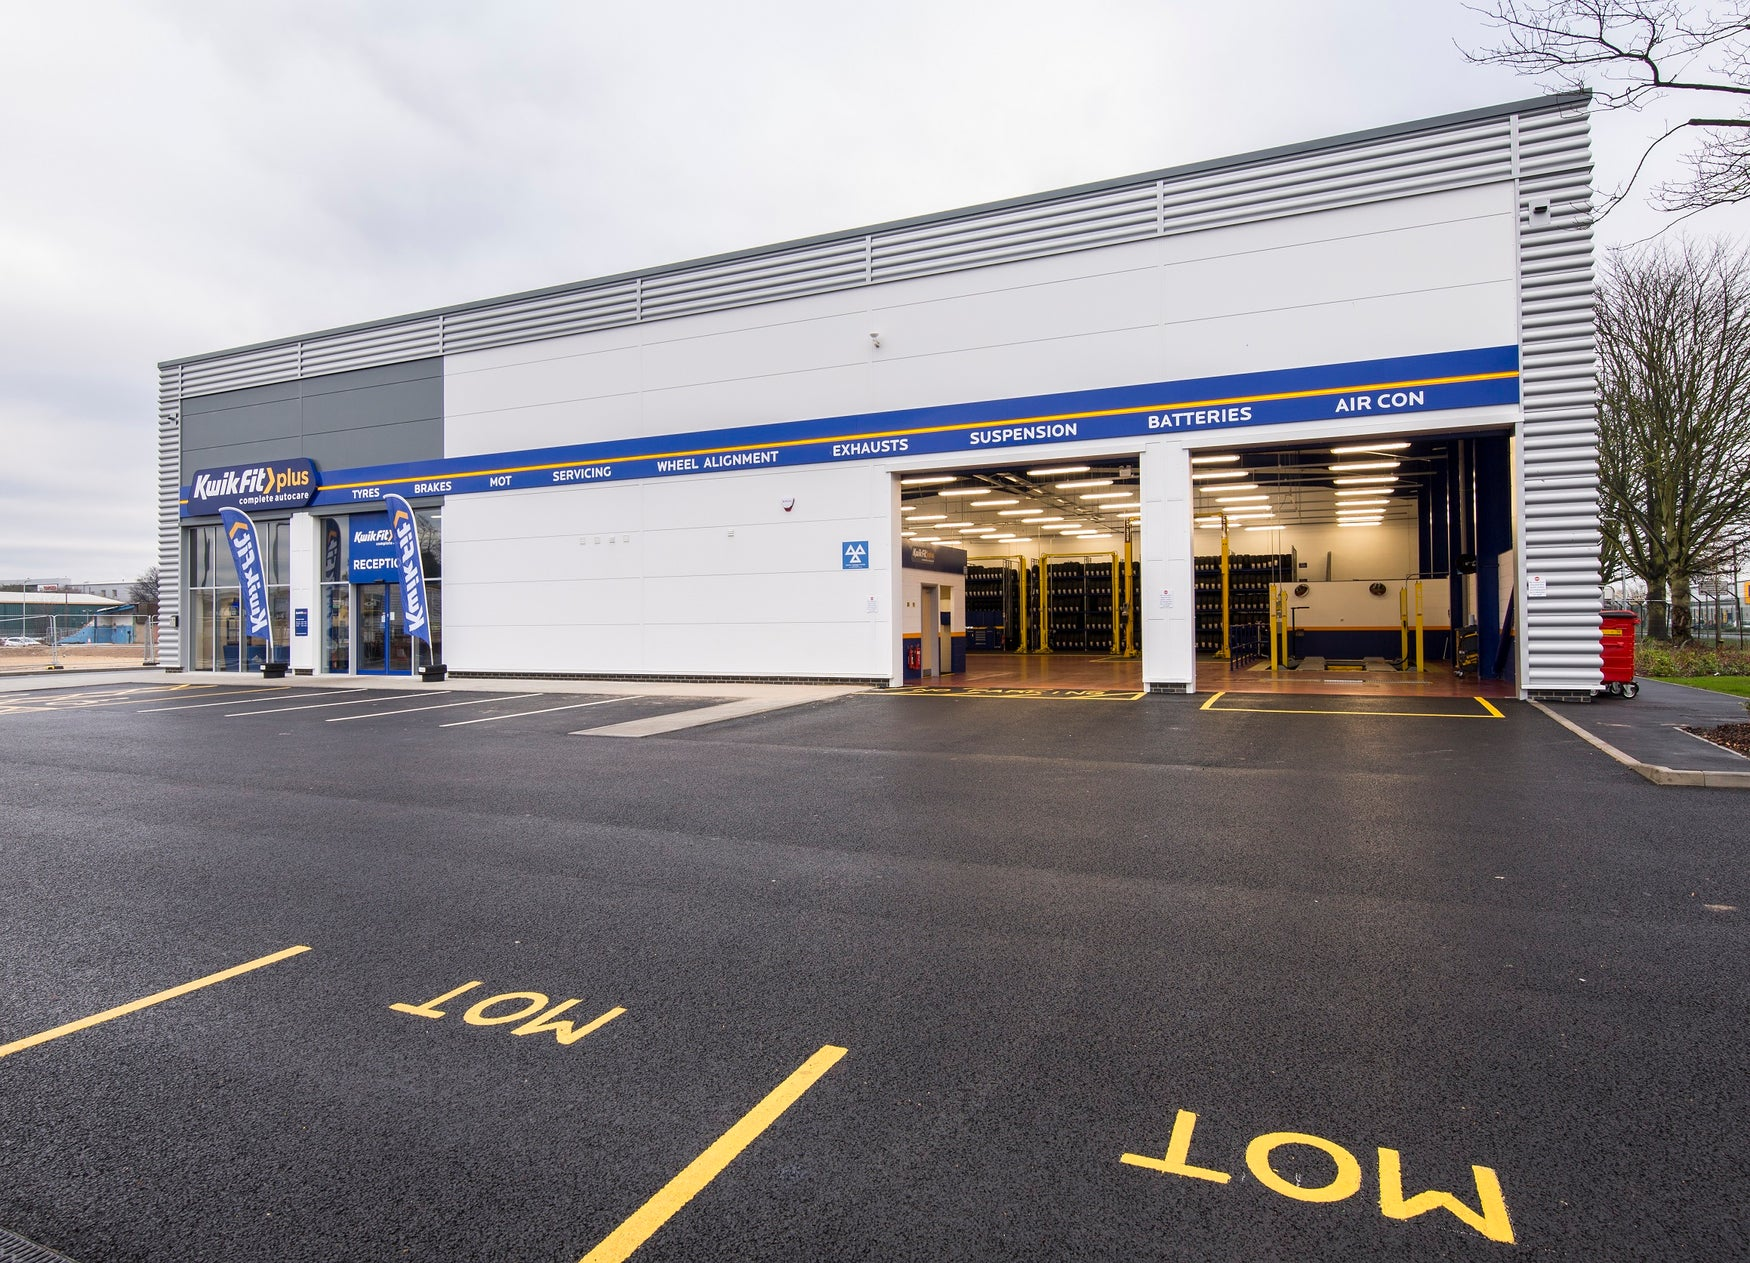 Kwik fit MoT centre